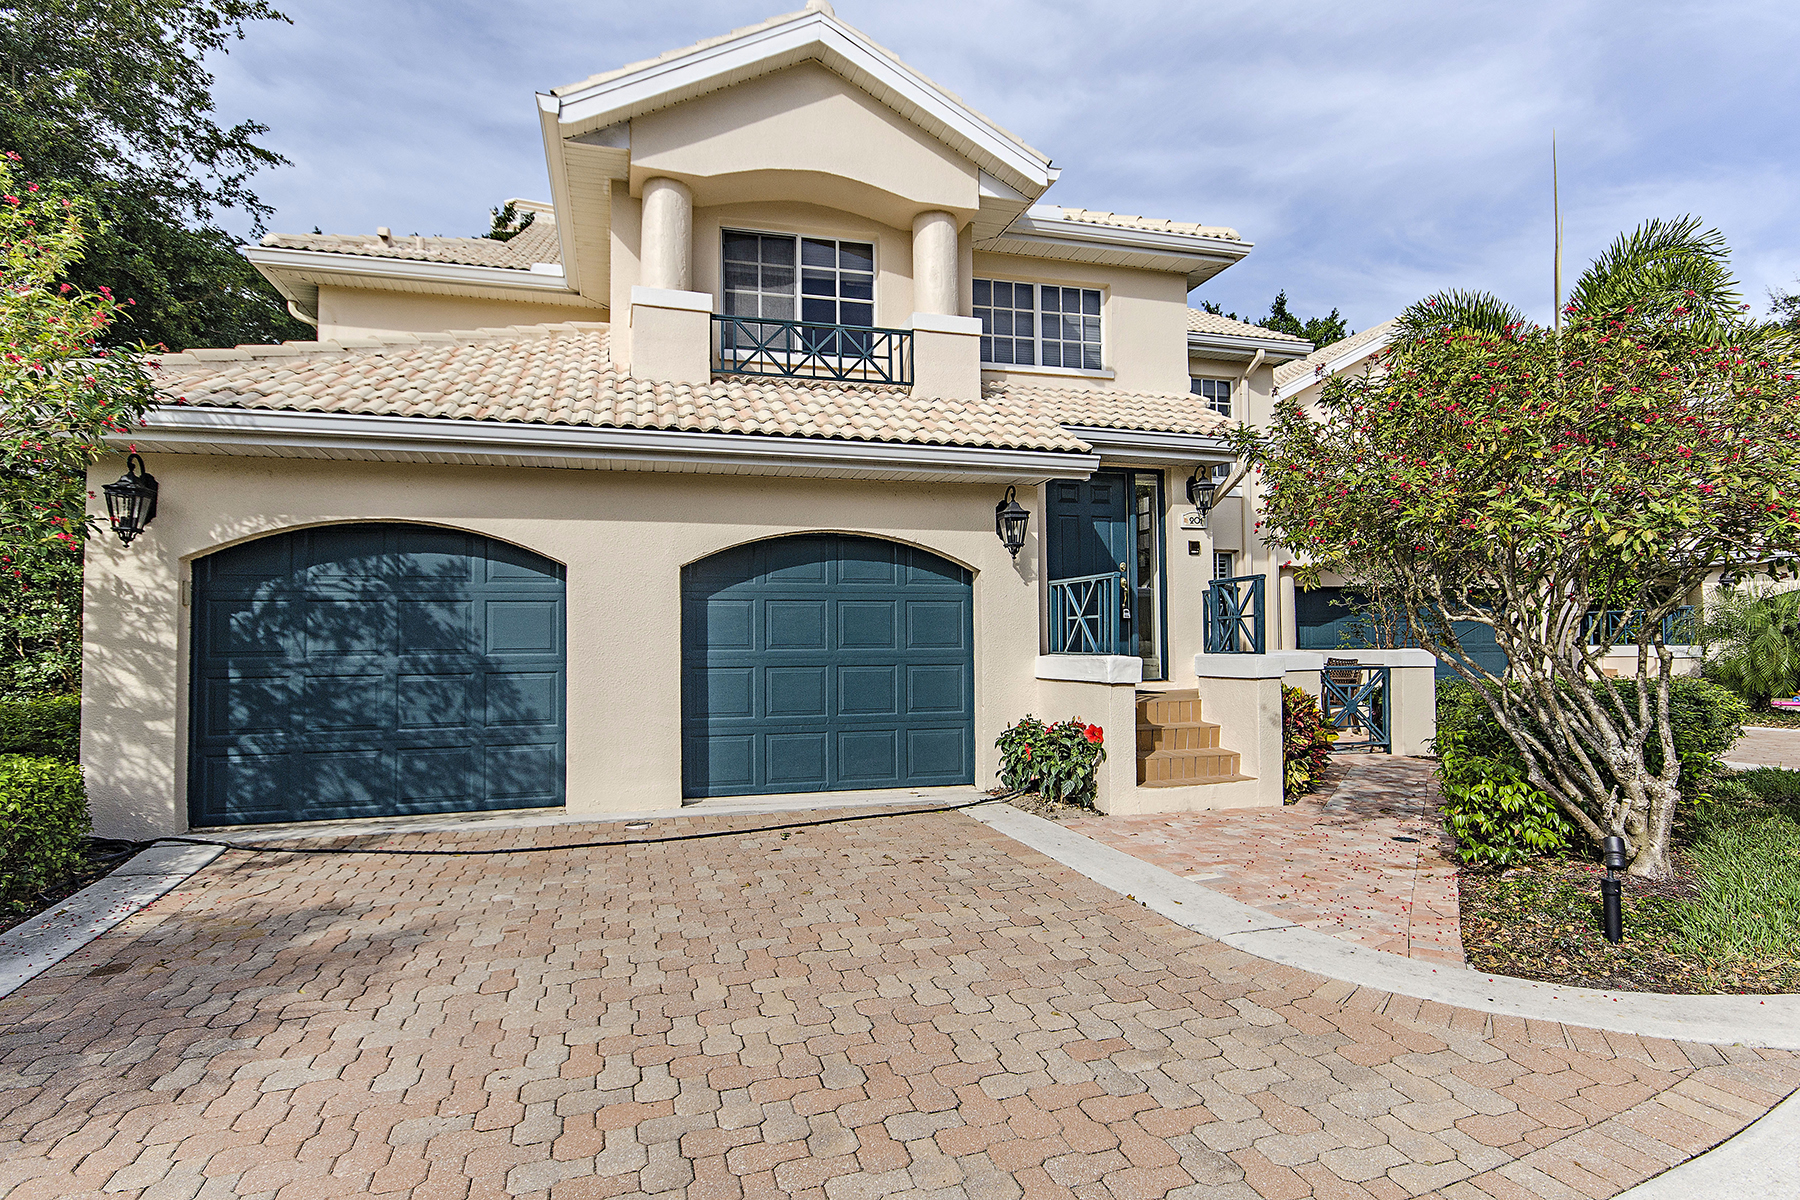 Condominium for Sale at SAN MARINO PELICAN BAY 6855 San Marino Dr 201B, Naples, Florida 34108 United States